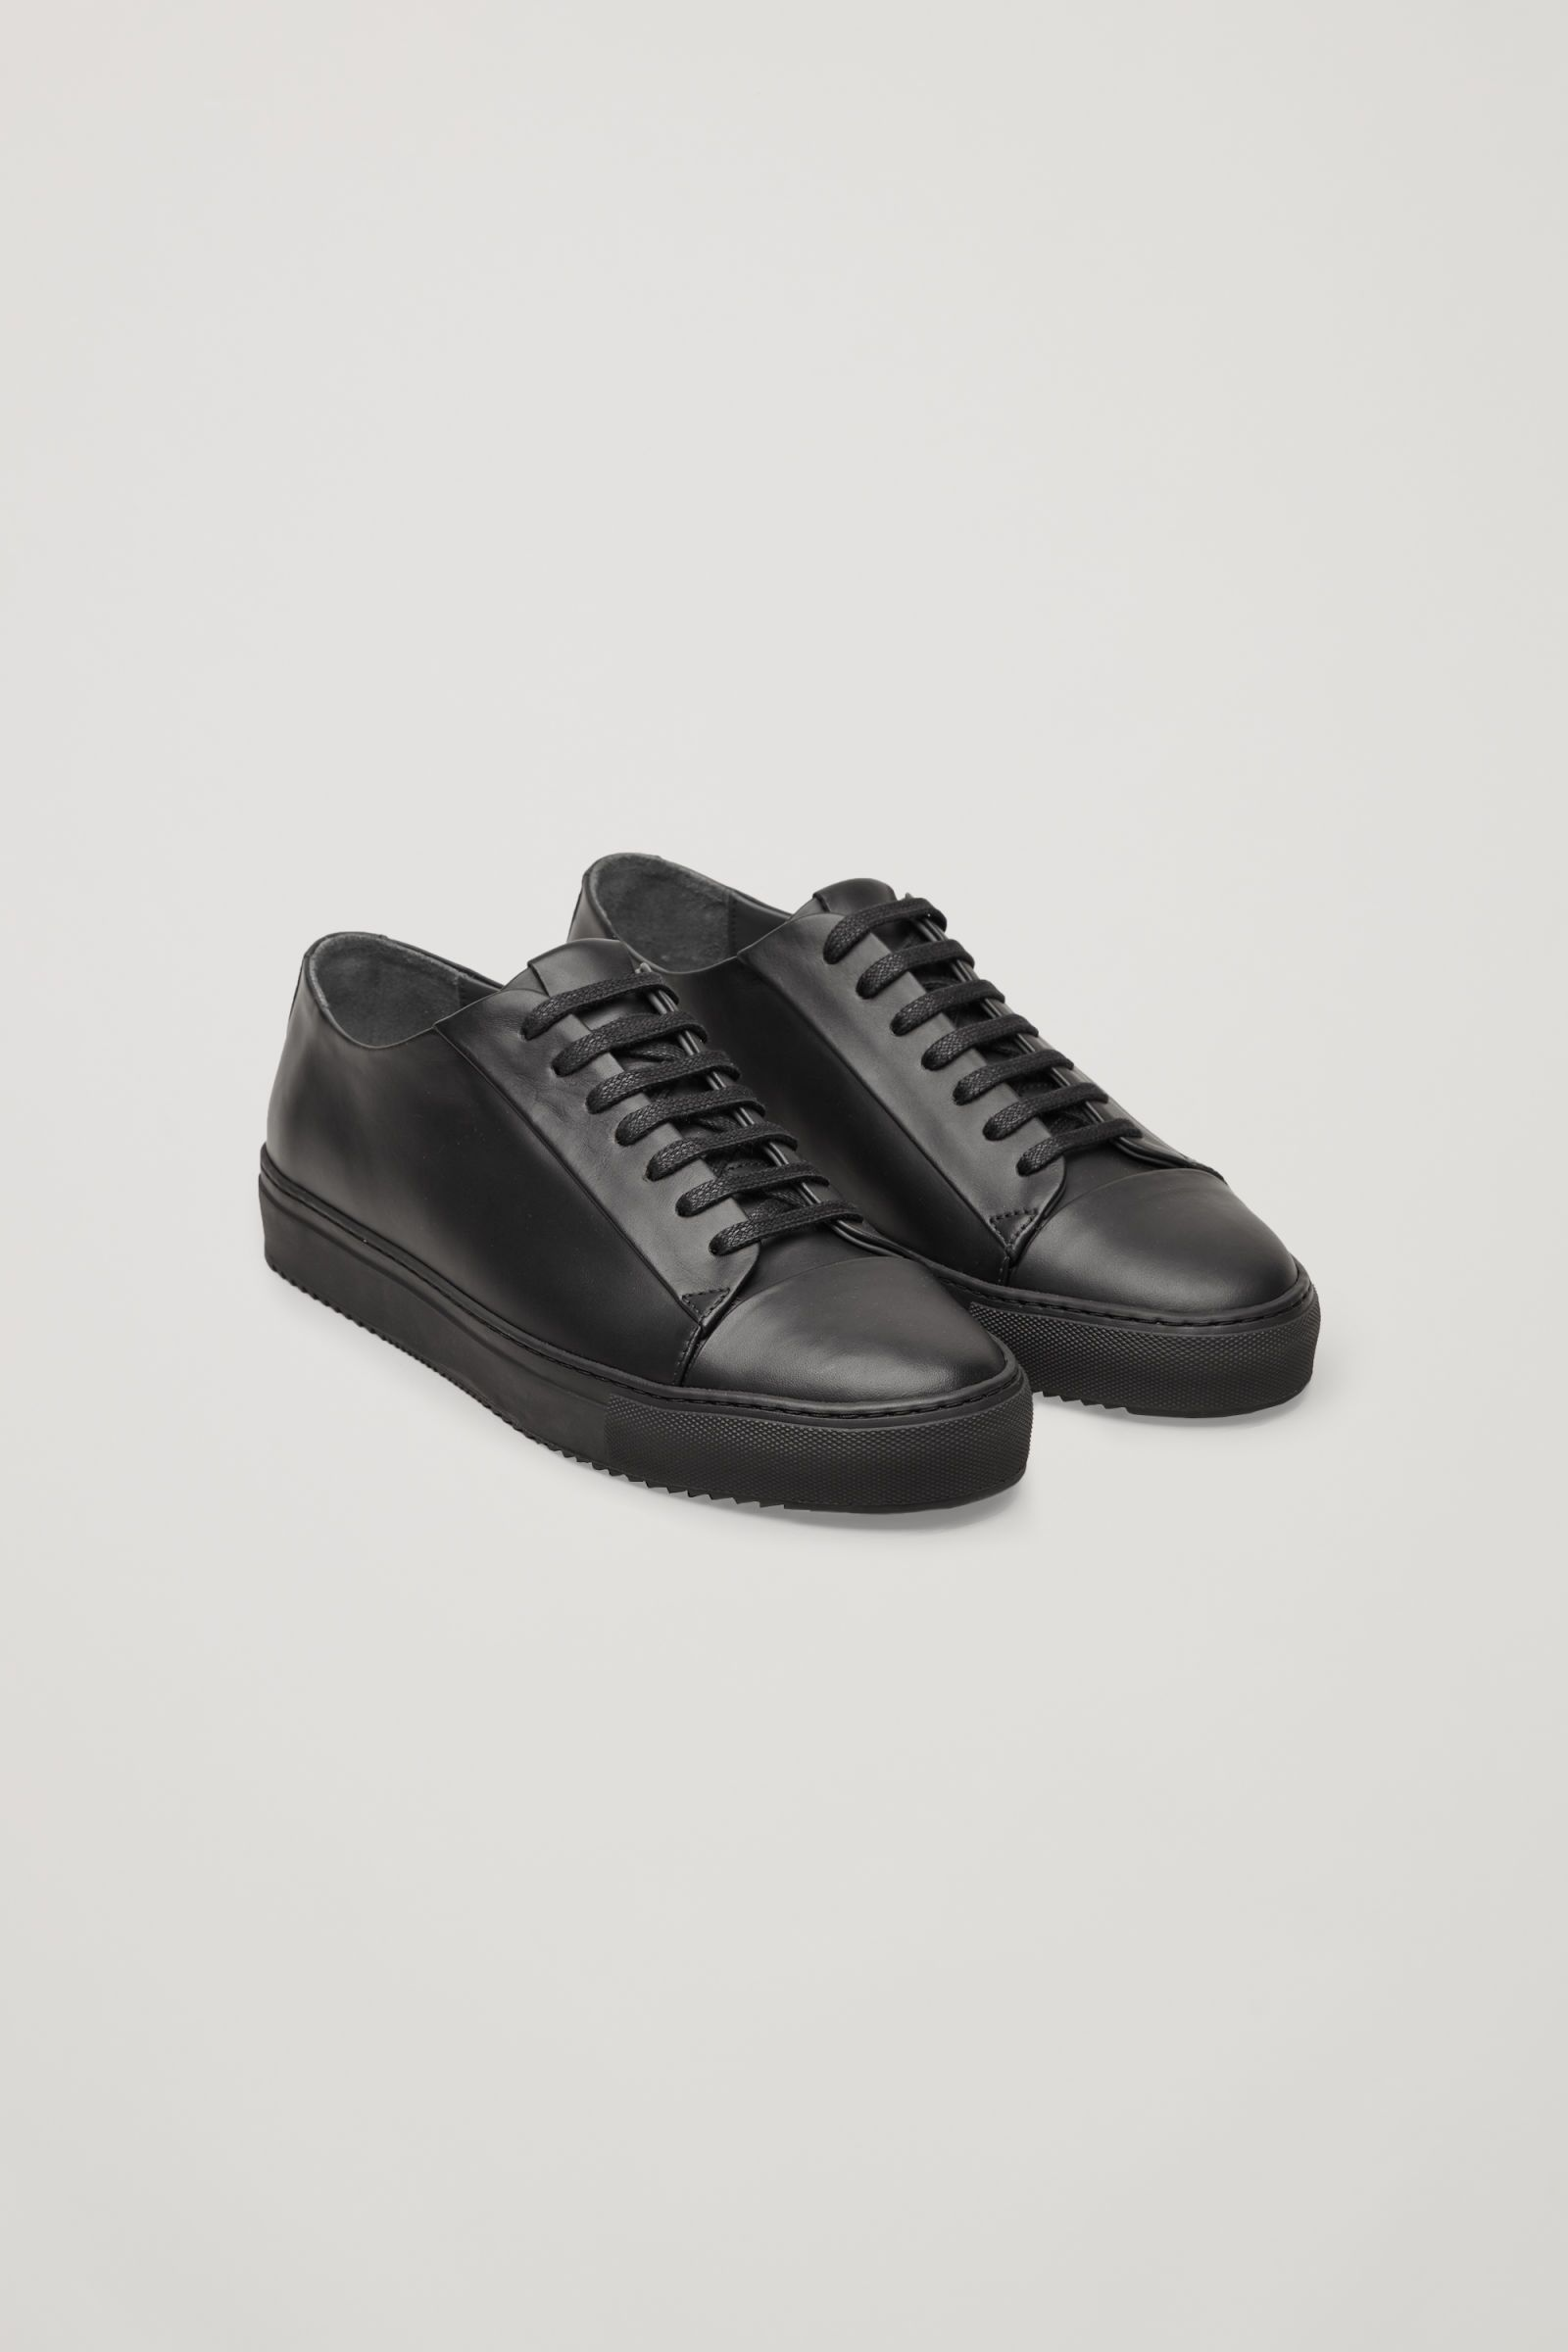 Productpage | Sneakers men fashion